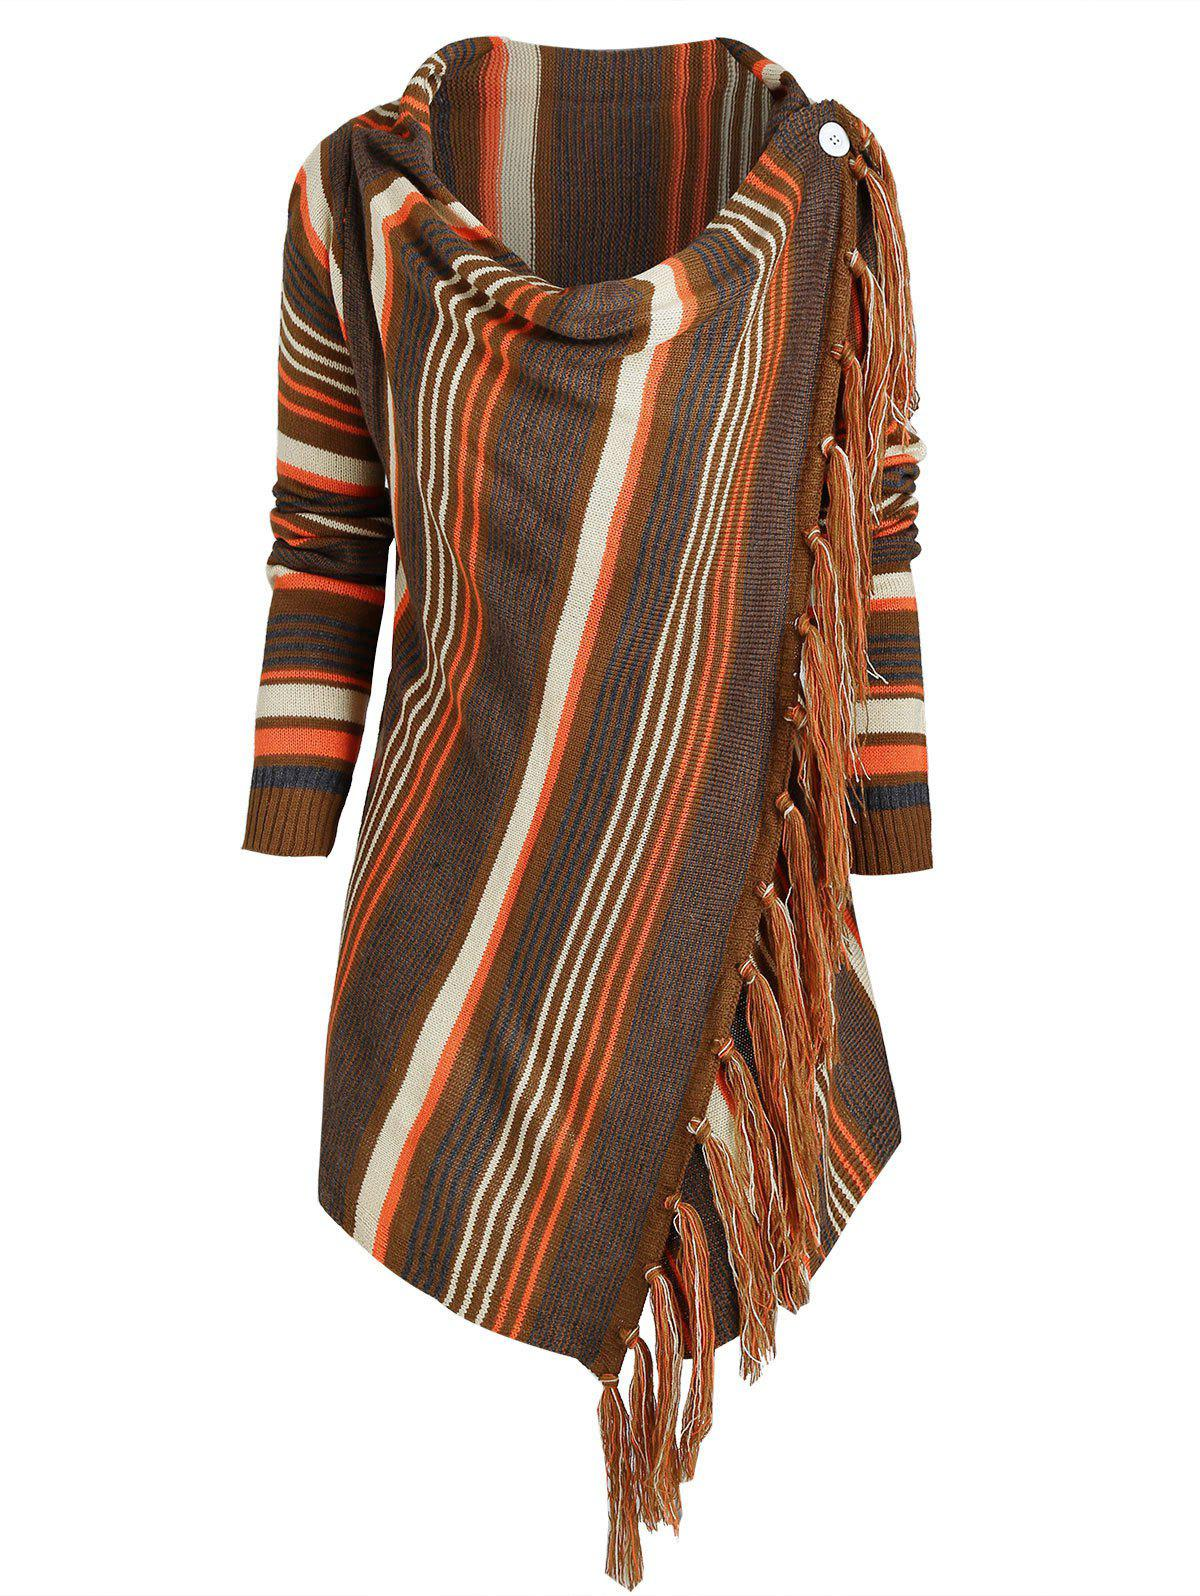 Cowl Neck Striped Fringed Convertible Sweater - DEEP COFFEE M